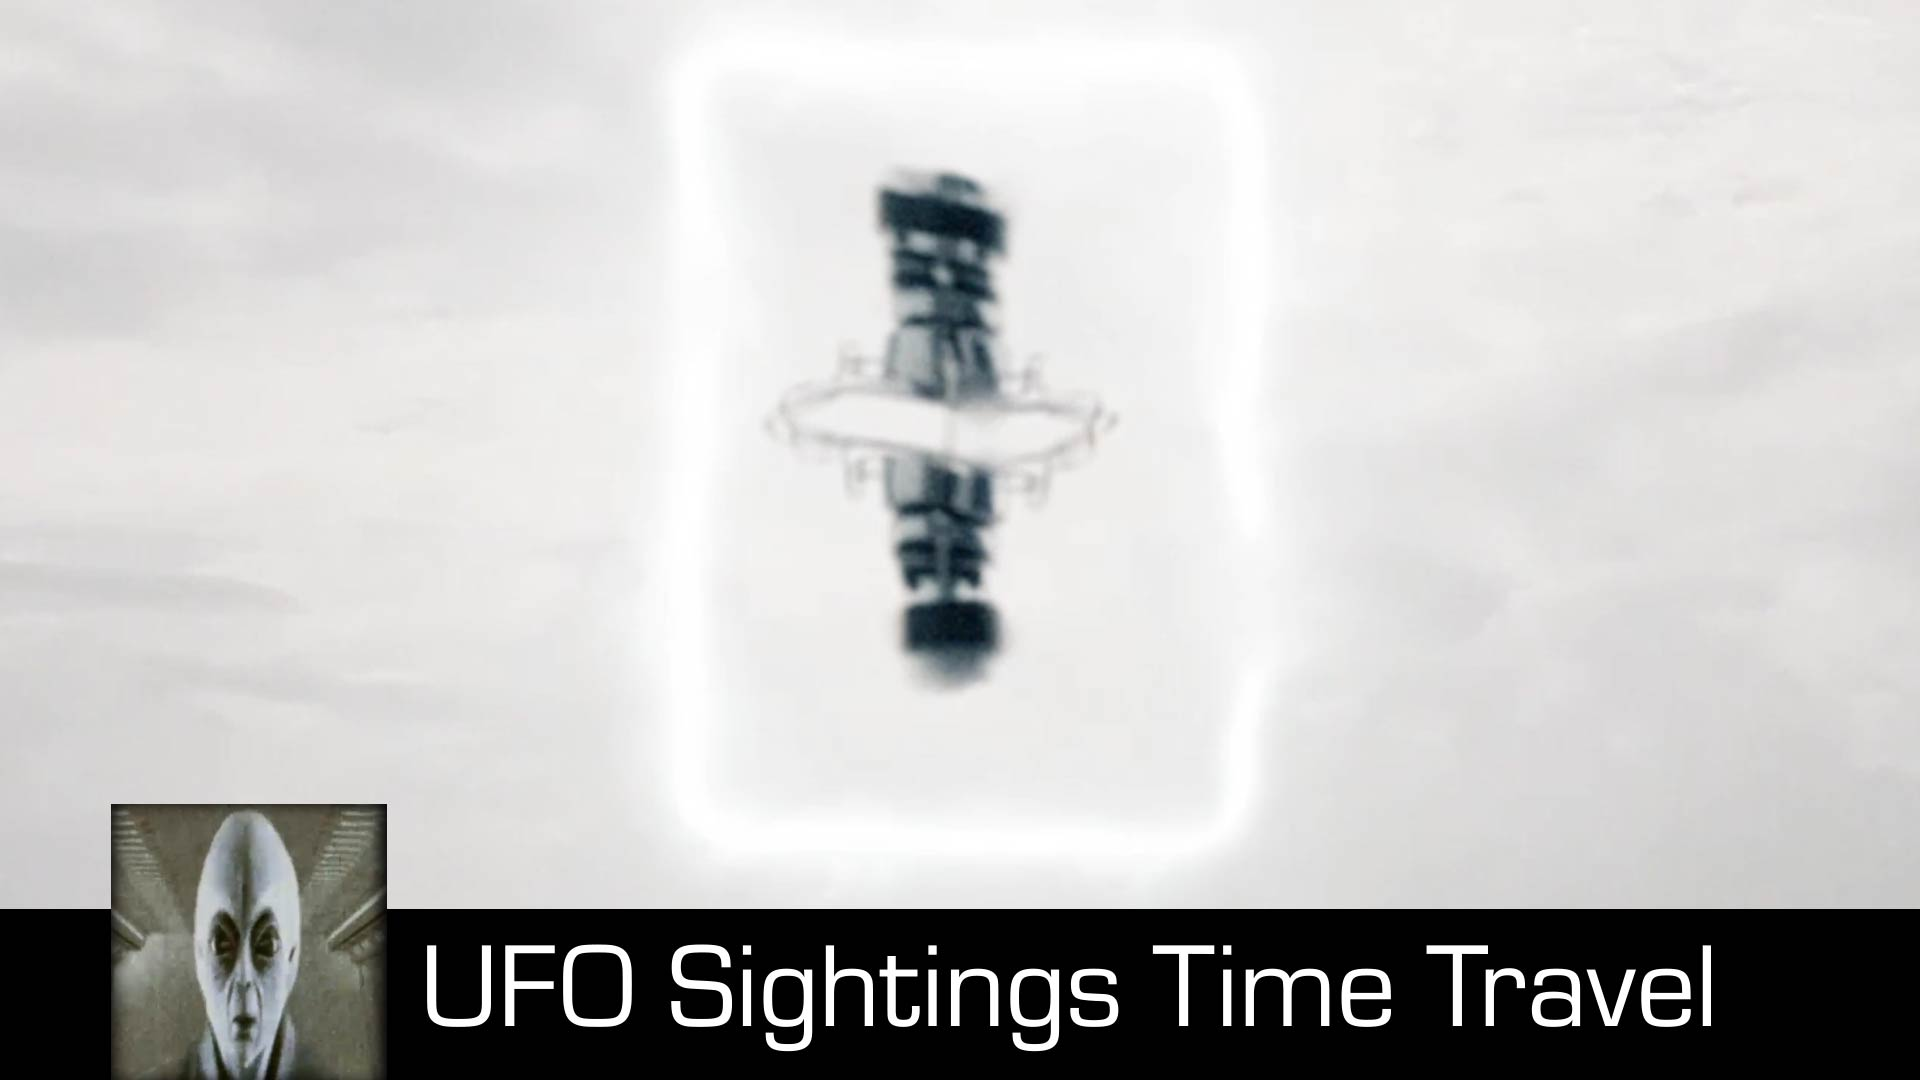 UFO Sightings Time Travel September 22nd 2018